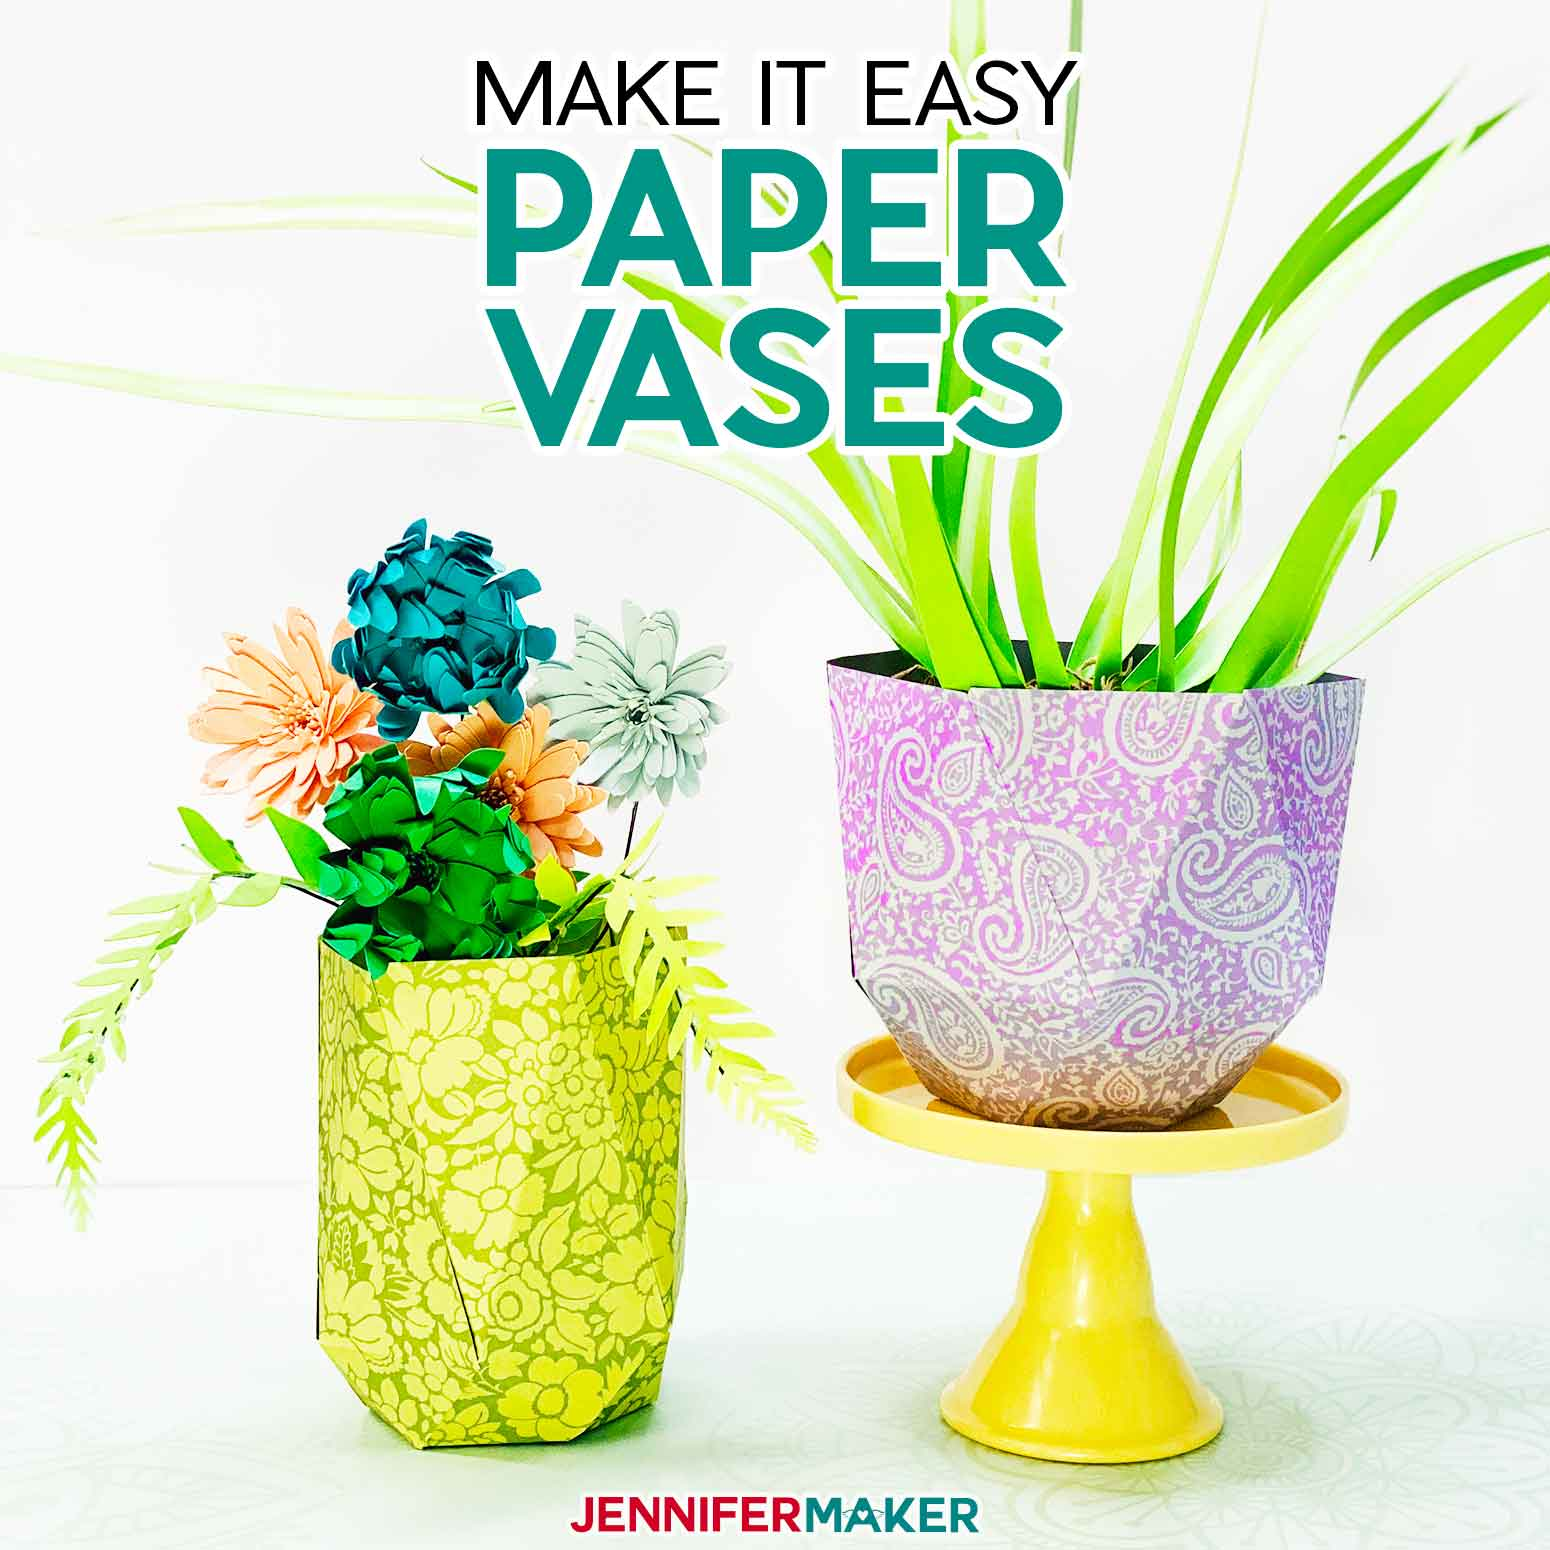 Easy Paper Vases for displaying paper flowers and succulents - free SVG cut file #papercraft #cricut #svgcutfile